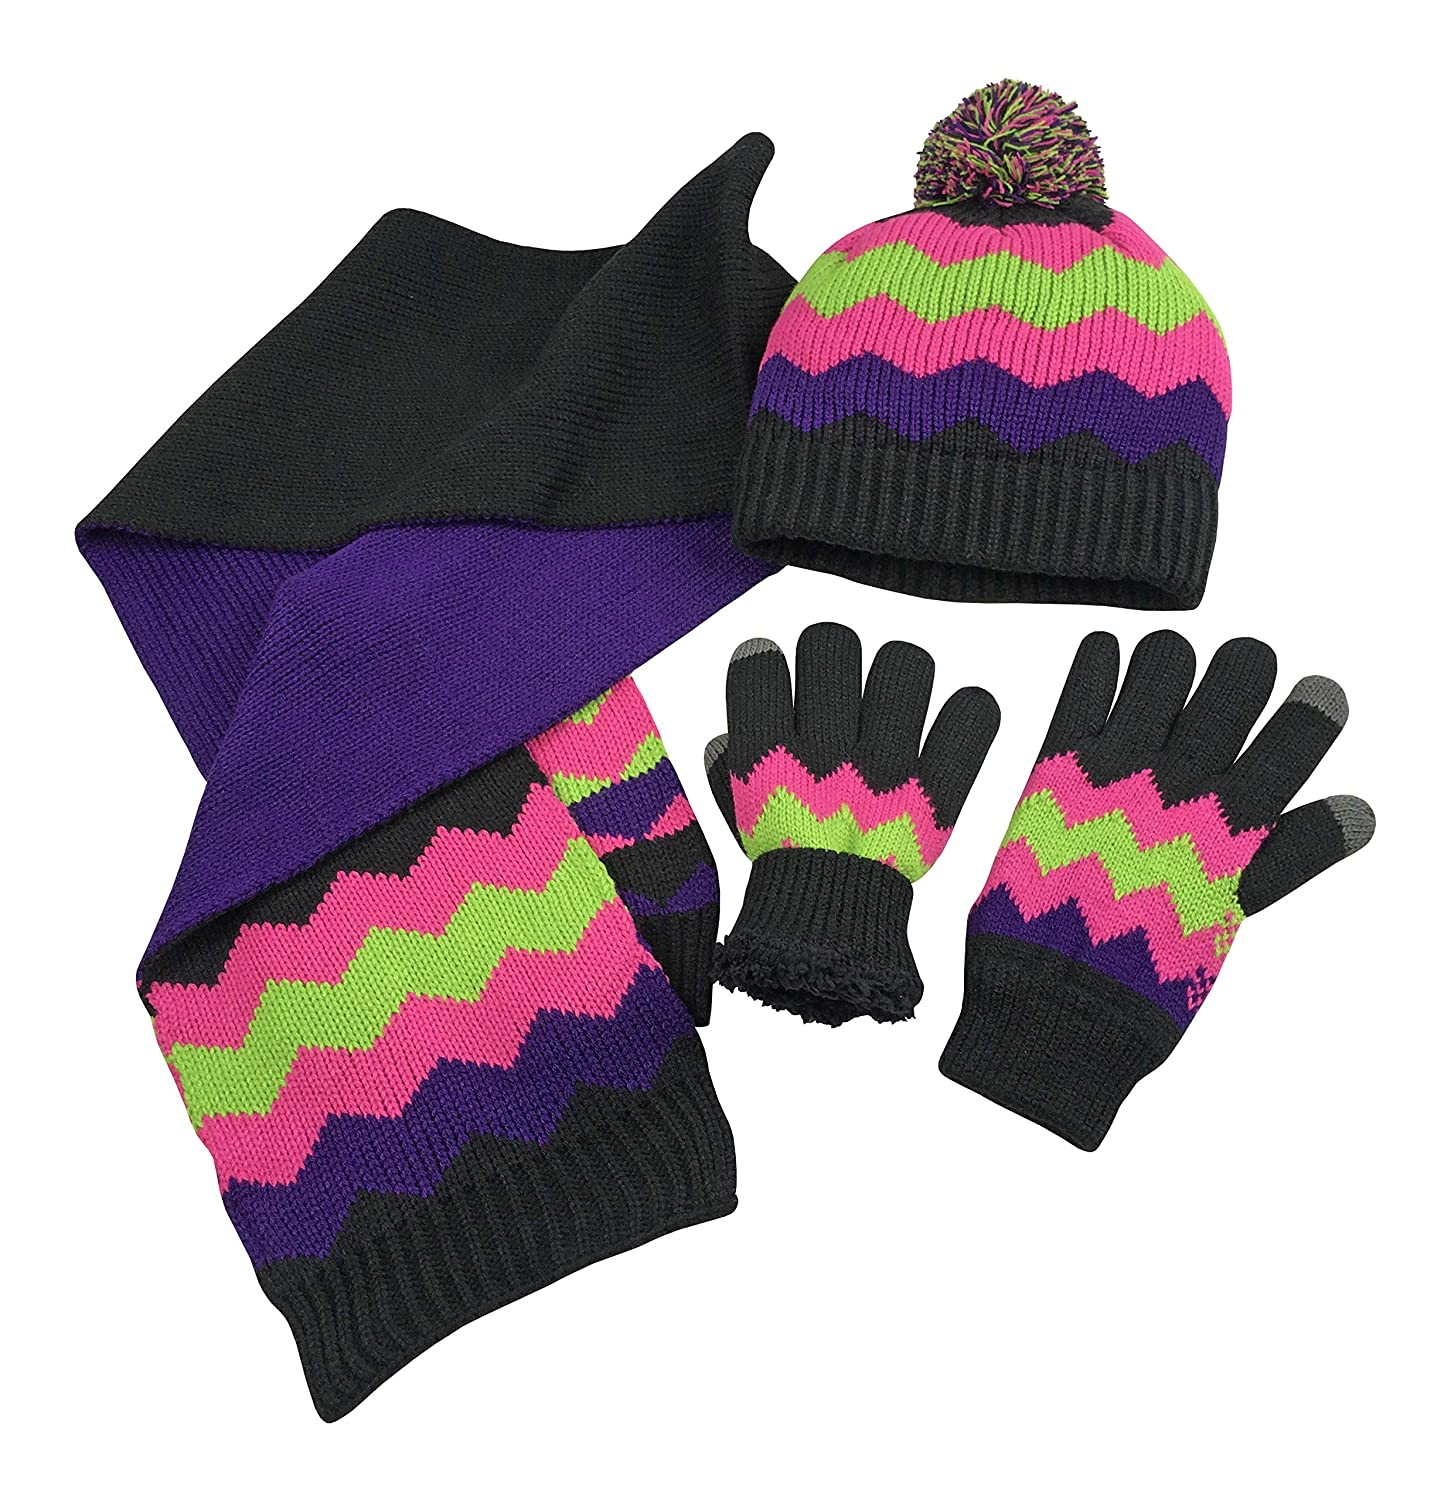 N Ice Caps Women s Bulky Cable Knit Hat Scarf Converter Glove Set  (Black Purple Multi with Touchscreen eb543309f56